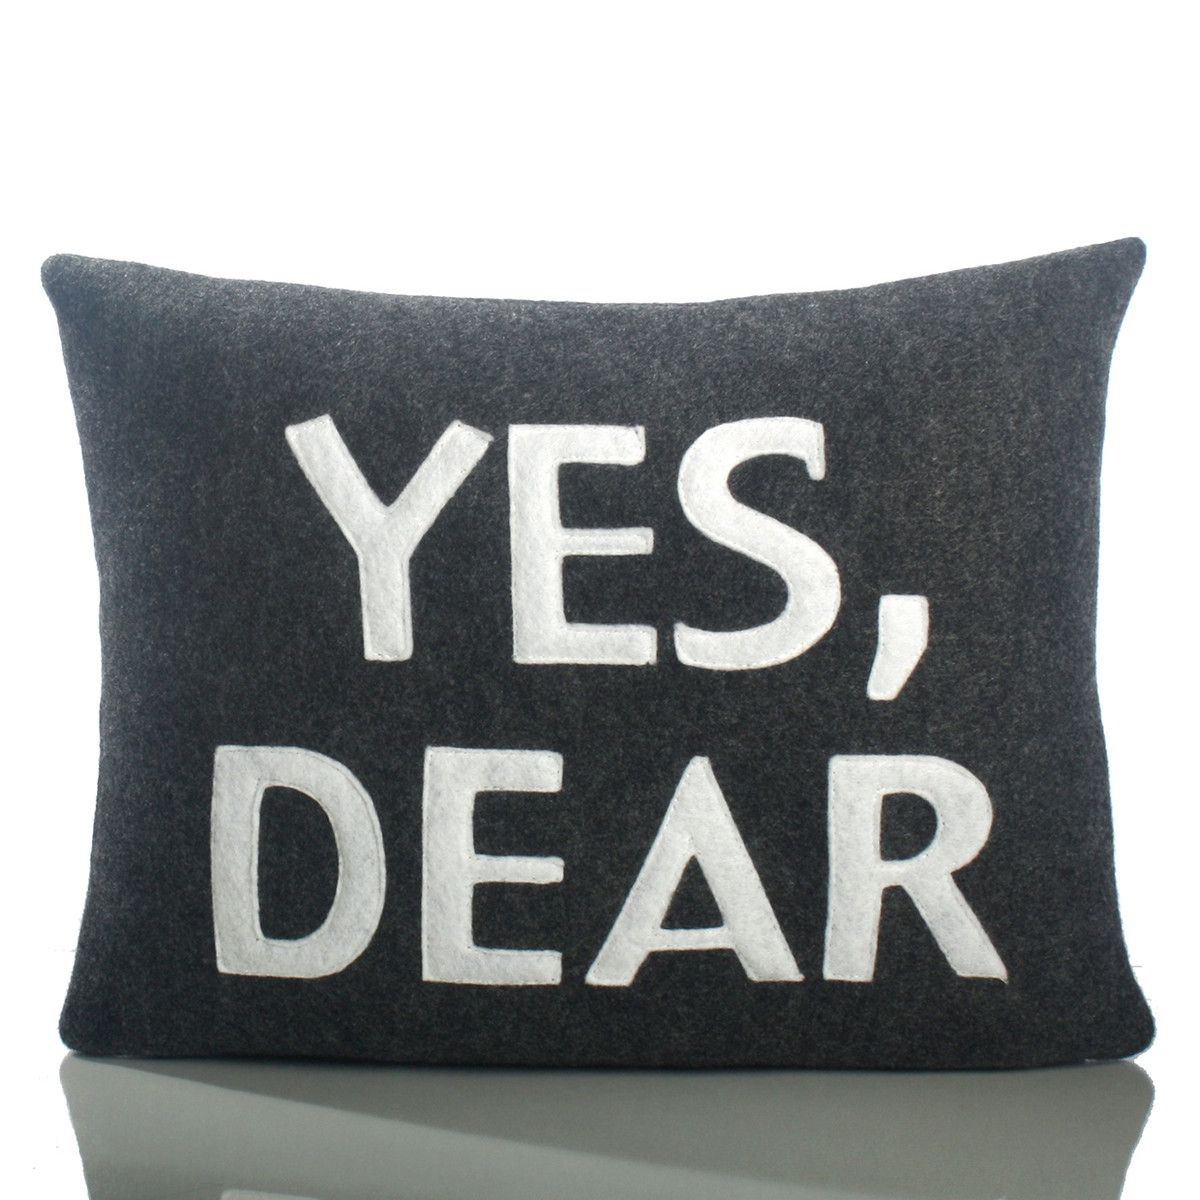 I Liked This Design On Fab Yes Dear 10x14 Charcoal Pillows Applique Pillows Throw Pillows